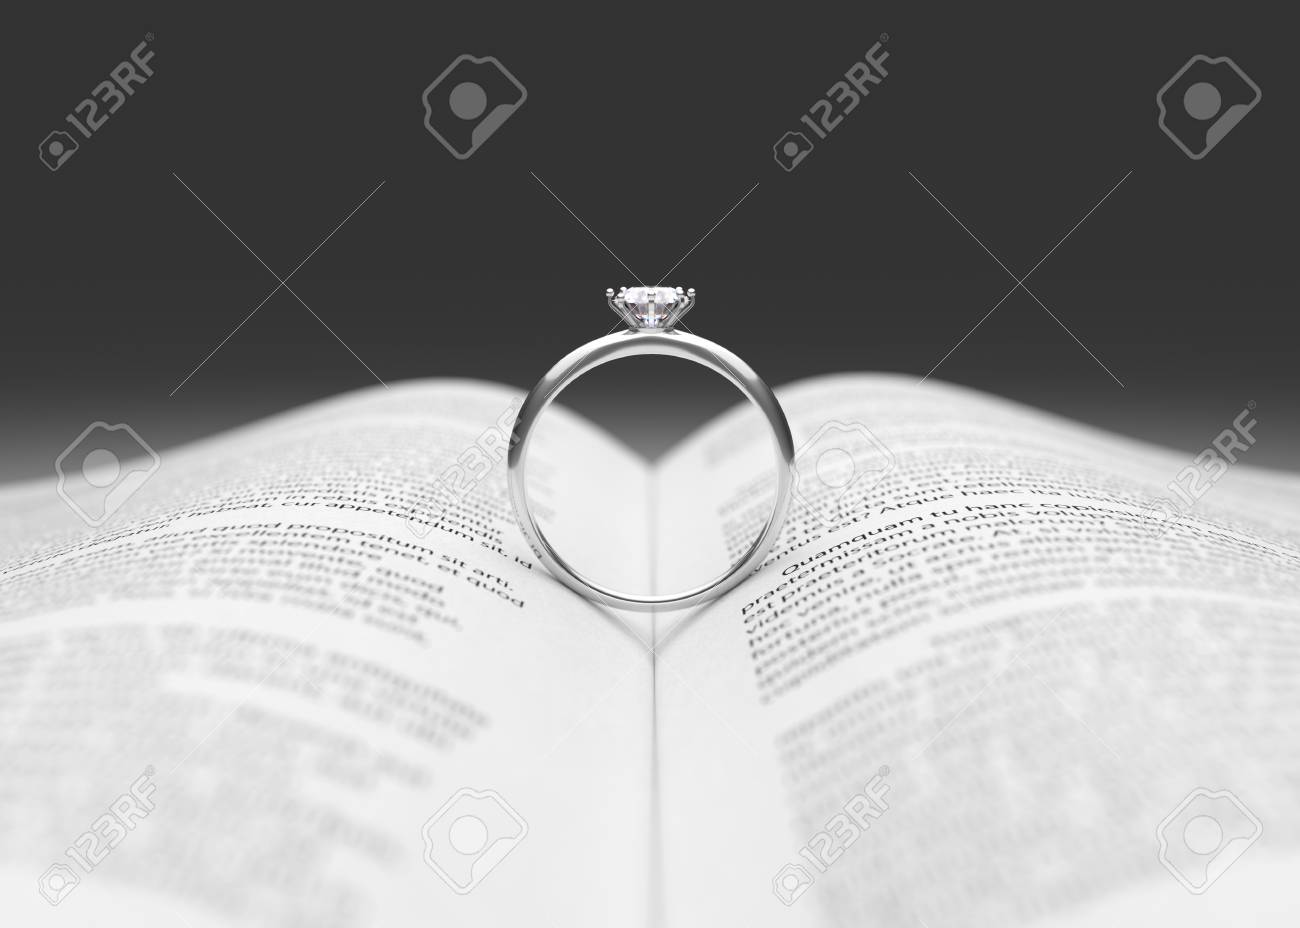 Wedding Ring On The Book Page 3D Illustration Stock Photo Picture